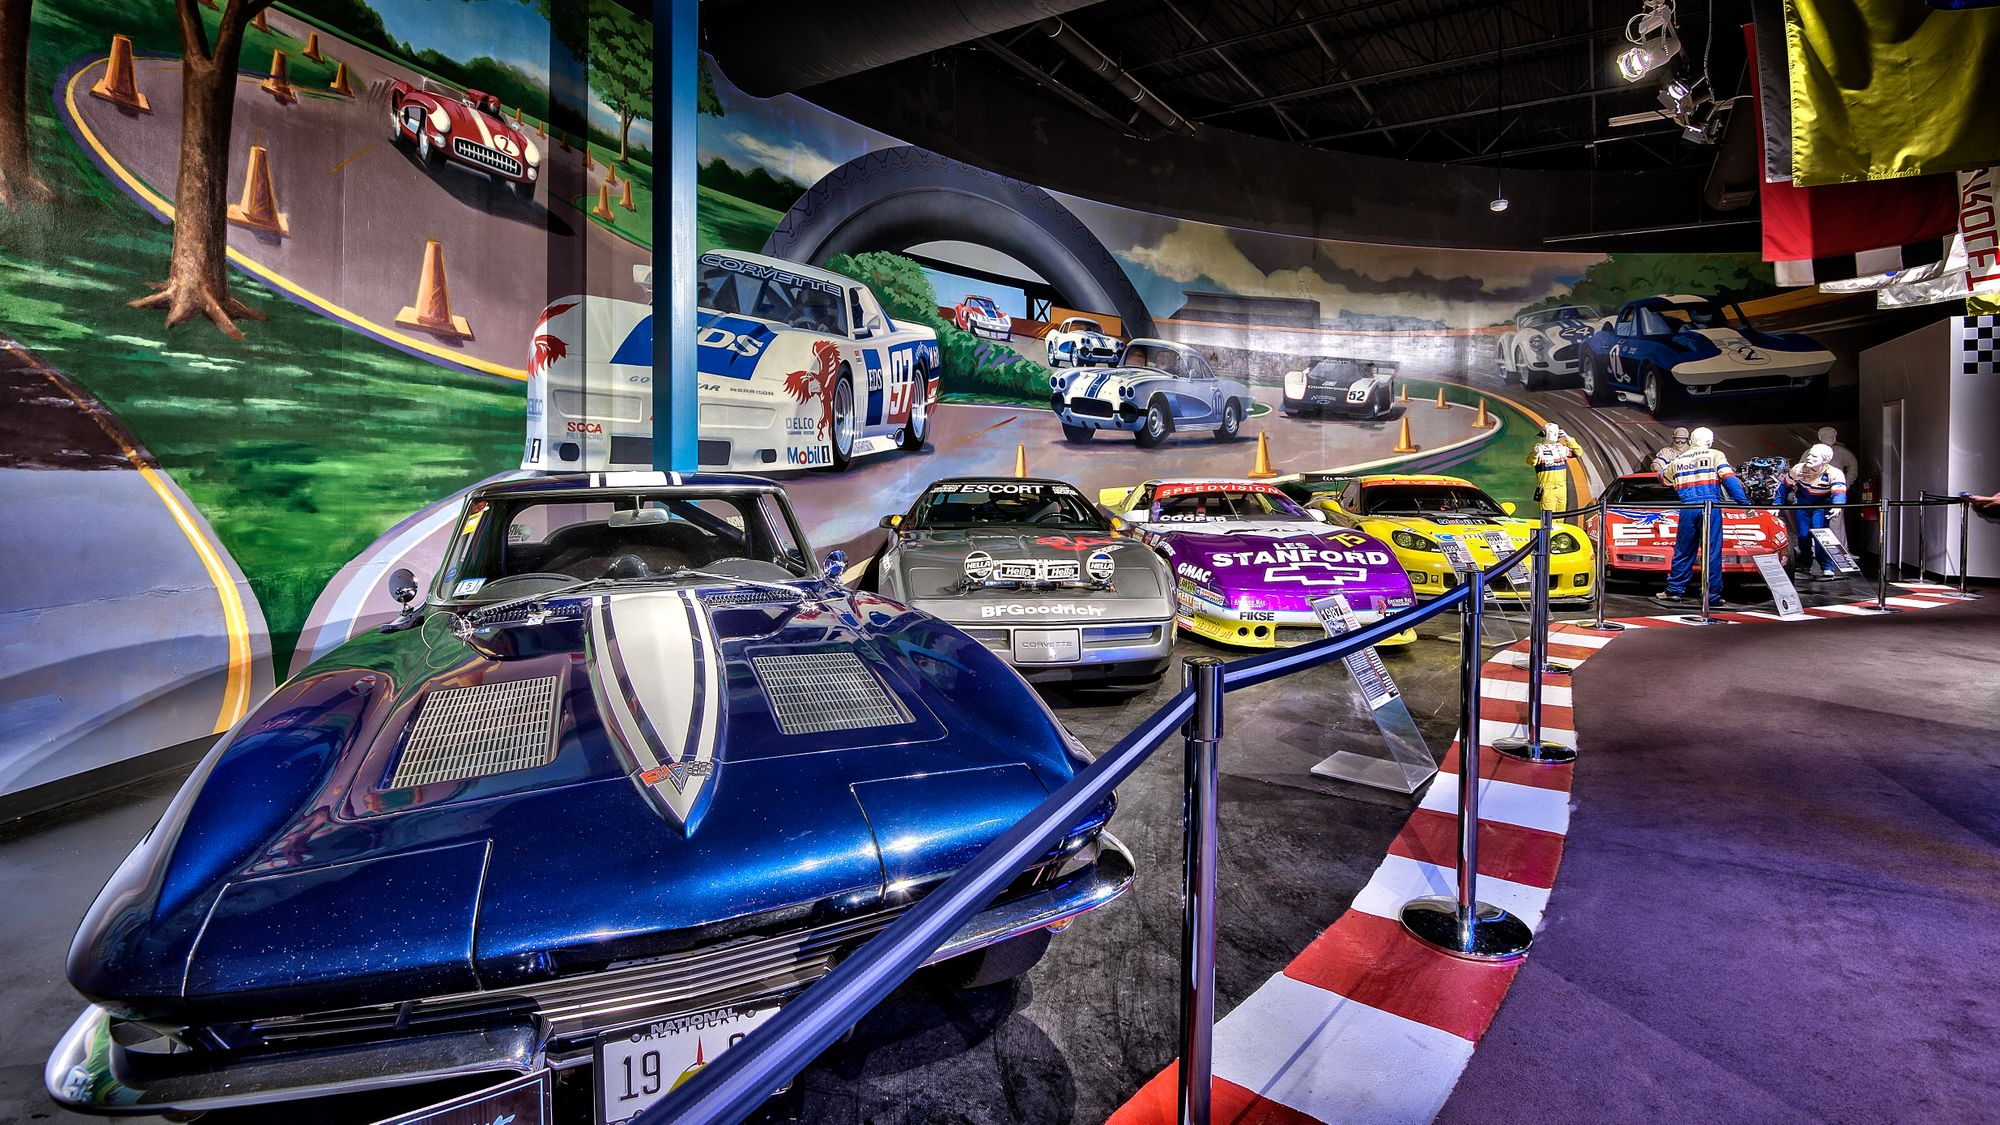 National Corvette Museum Remains Open Despite Coronavirus Concerns